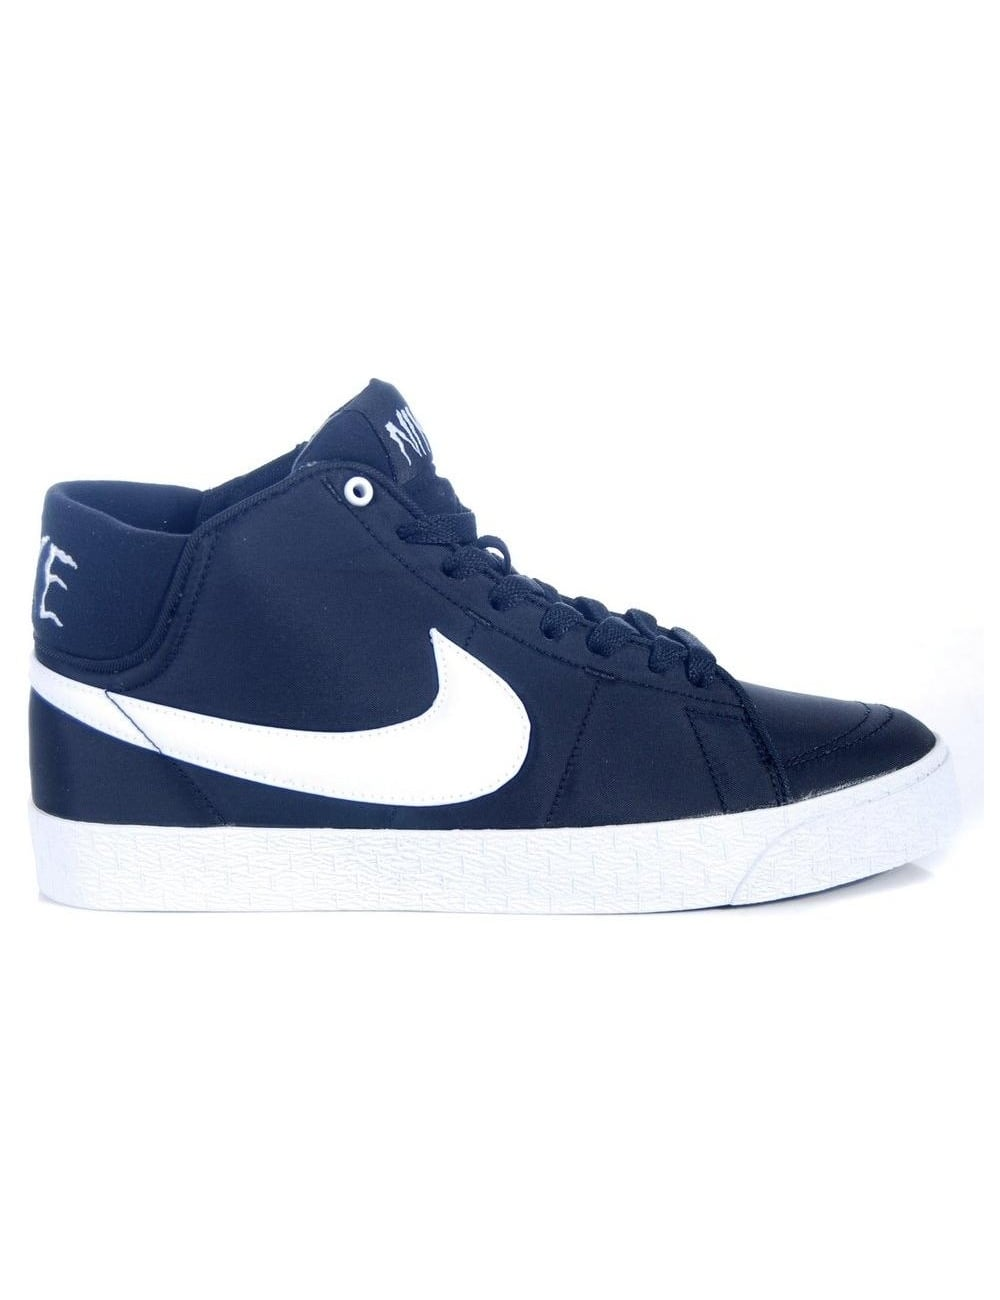 16d134aa Nike SB Blazer Mid LR NF - Black/White - Footwear from Fat Buddha ...